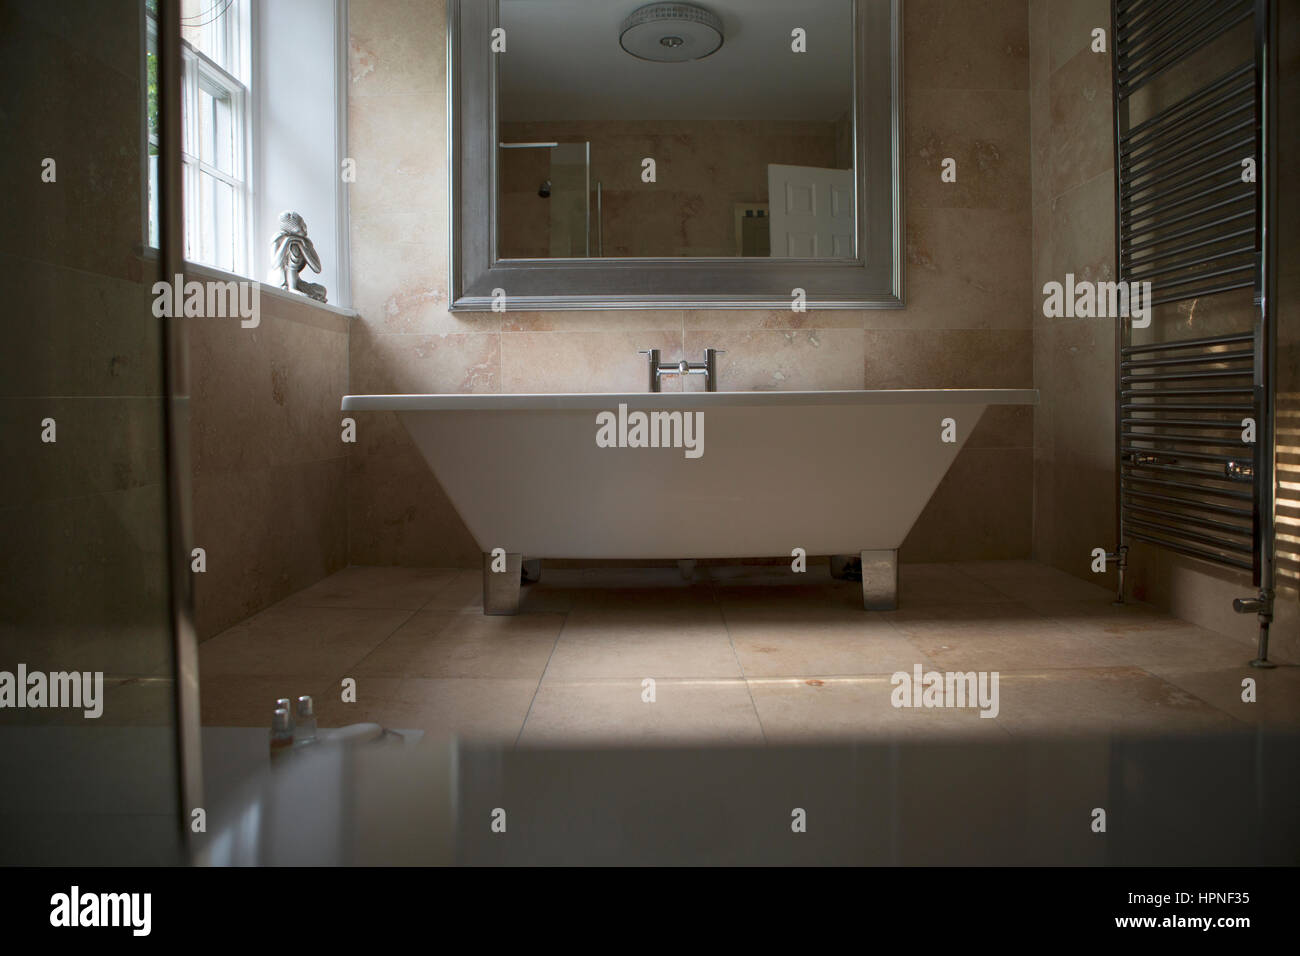 Standalone Bath Stock Photos & Standalone Bath Stock Images - Alamy